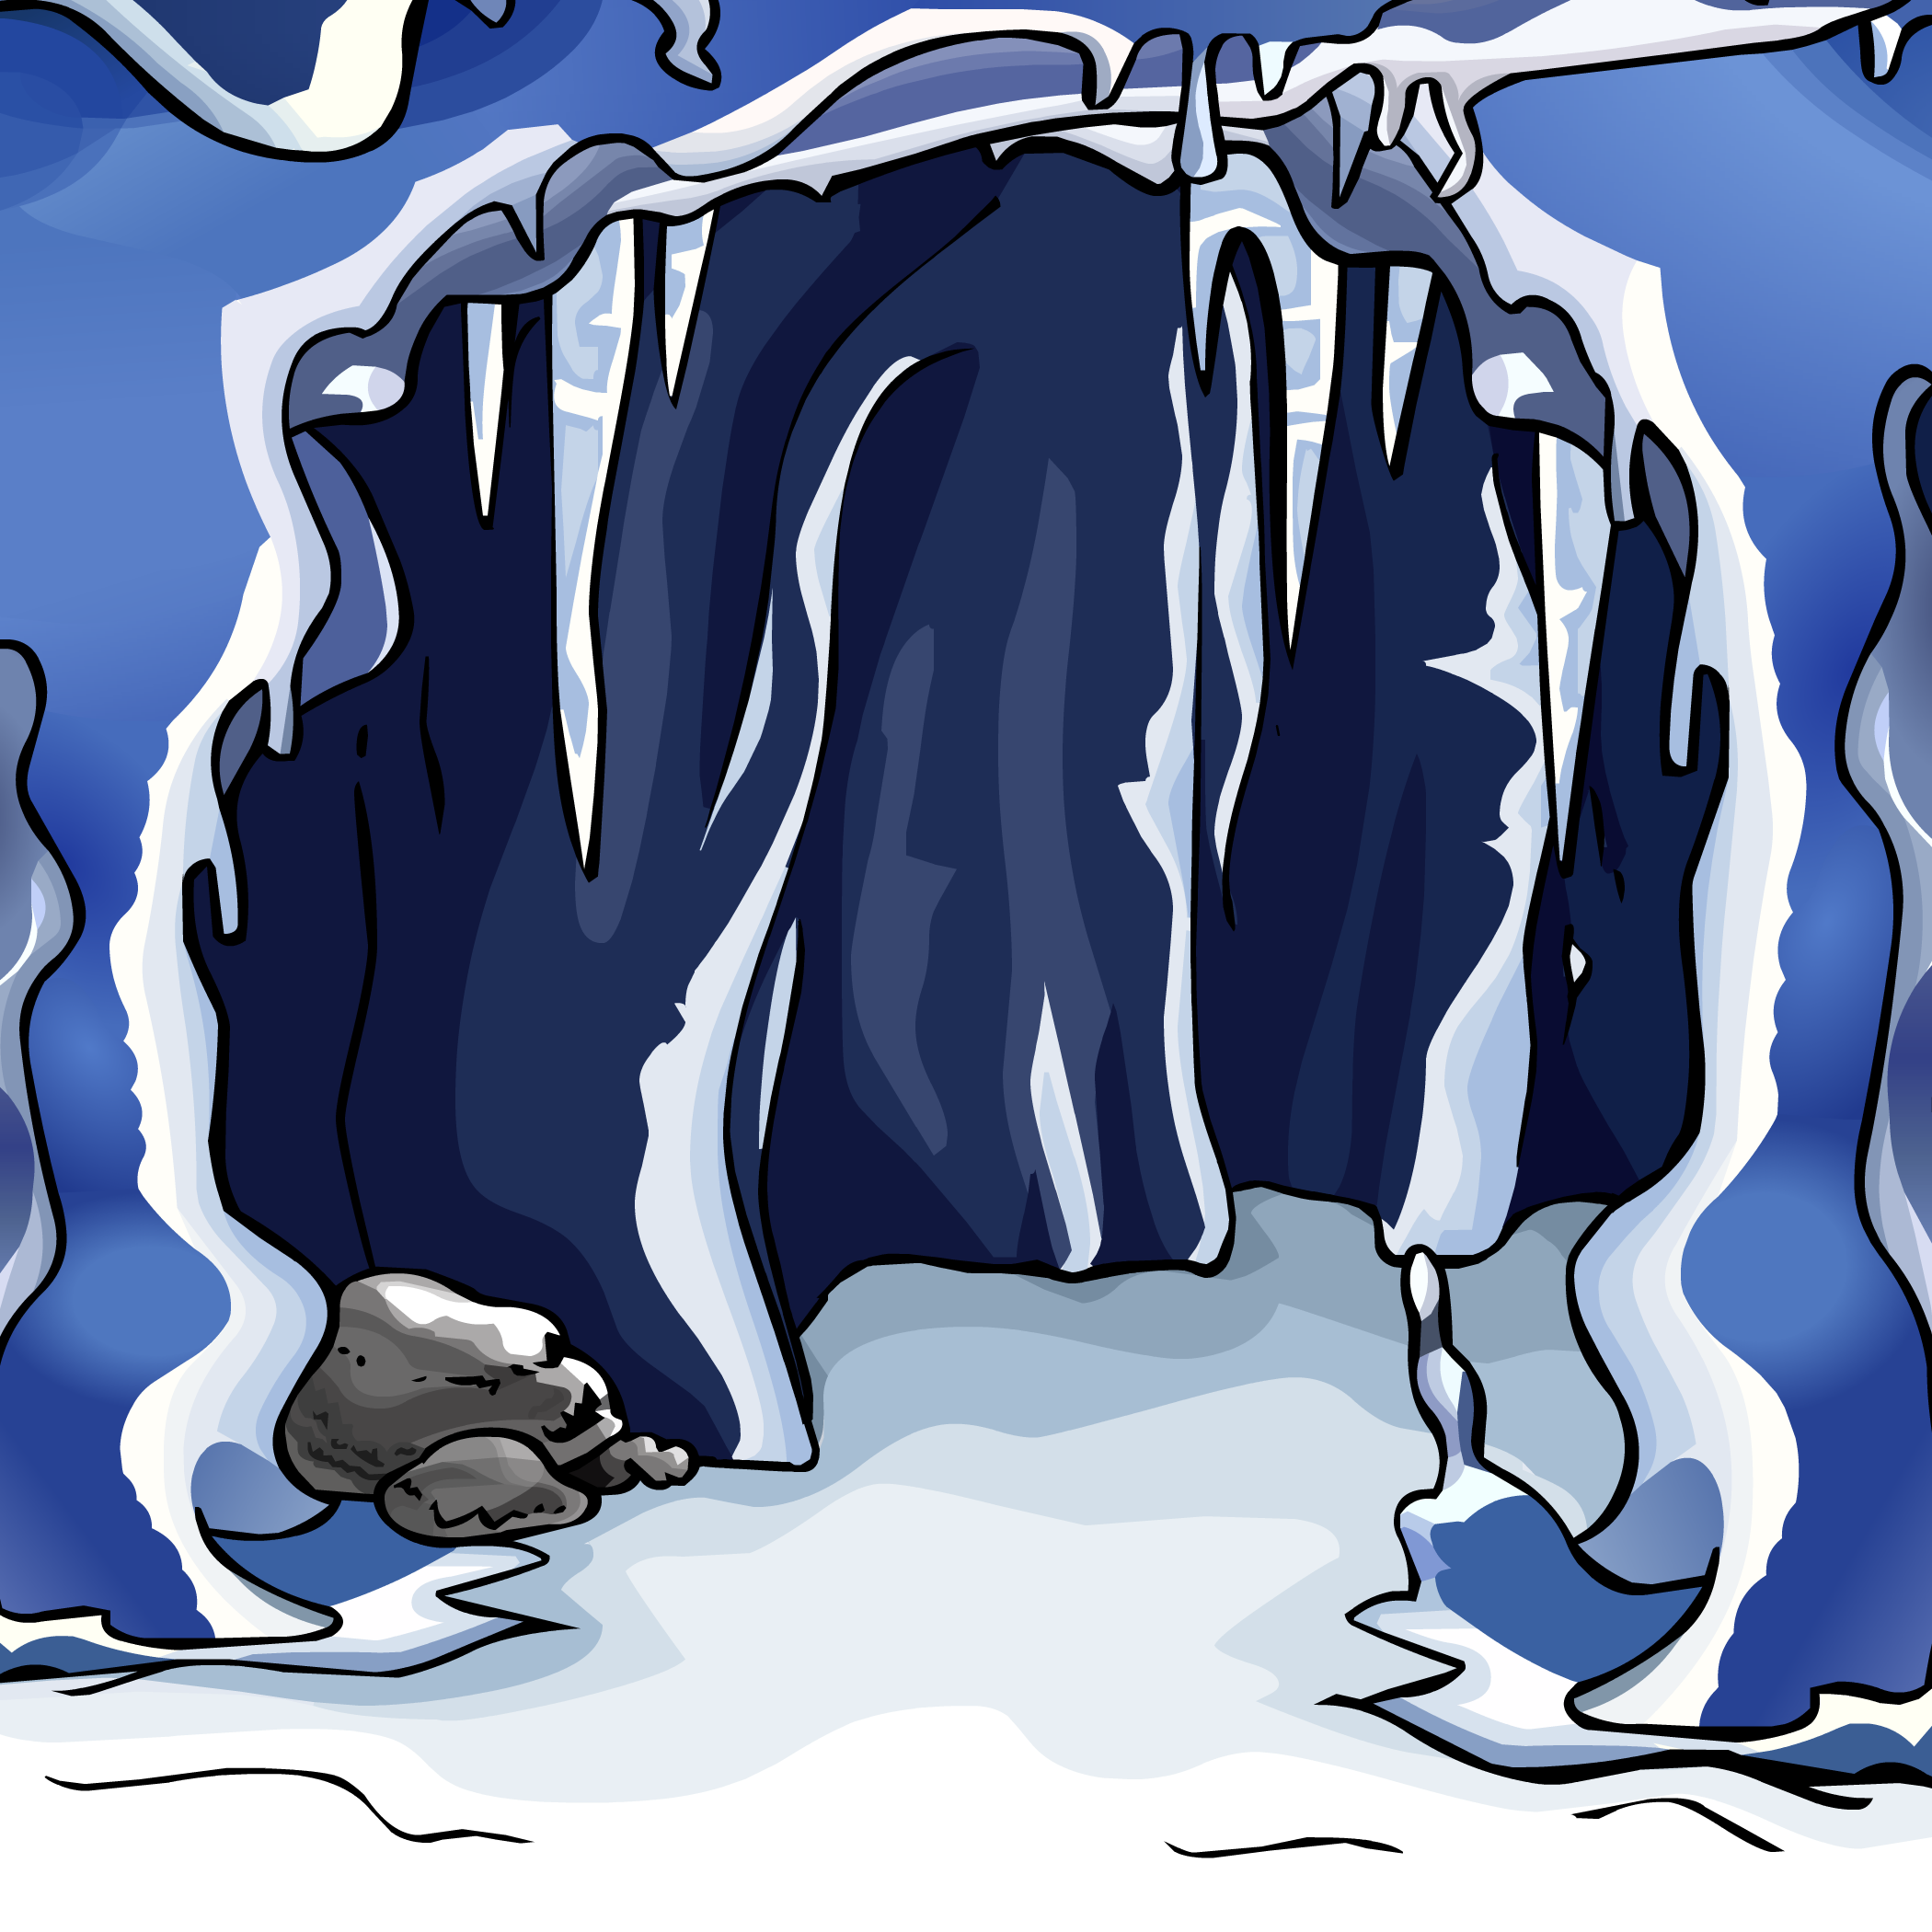 Cave clipart ice cave, Cave ice cave Transparent FREE for.